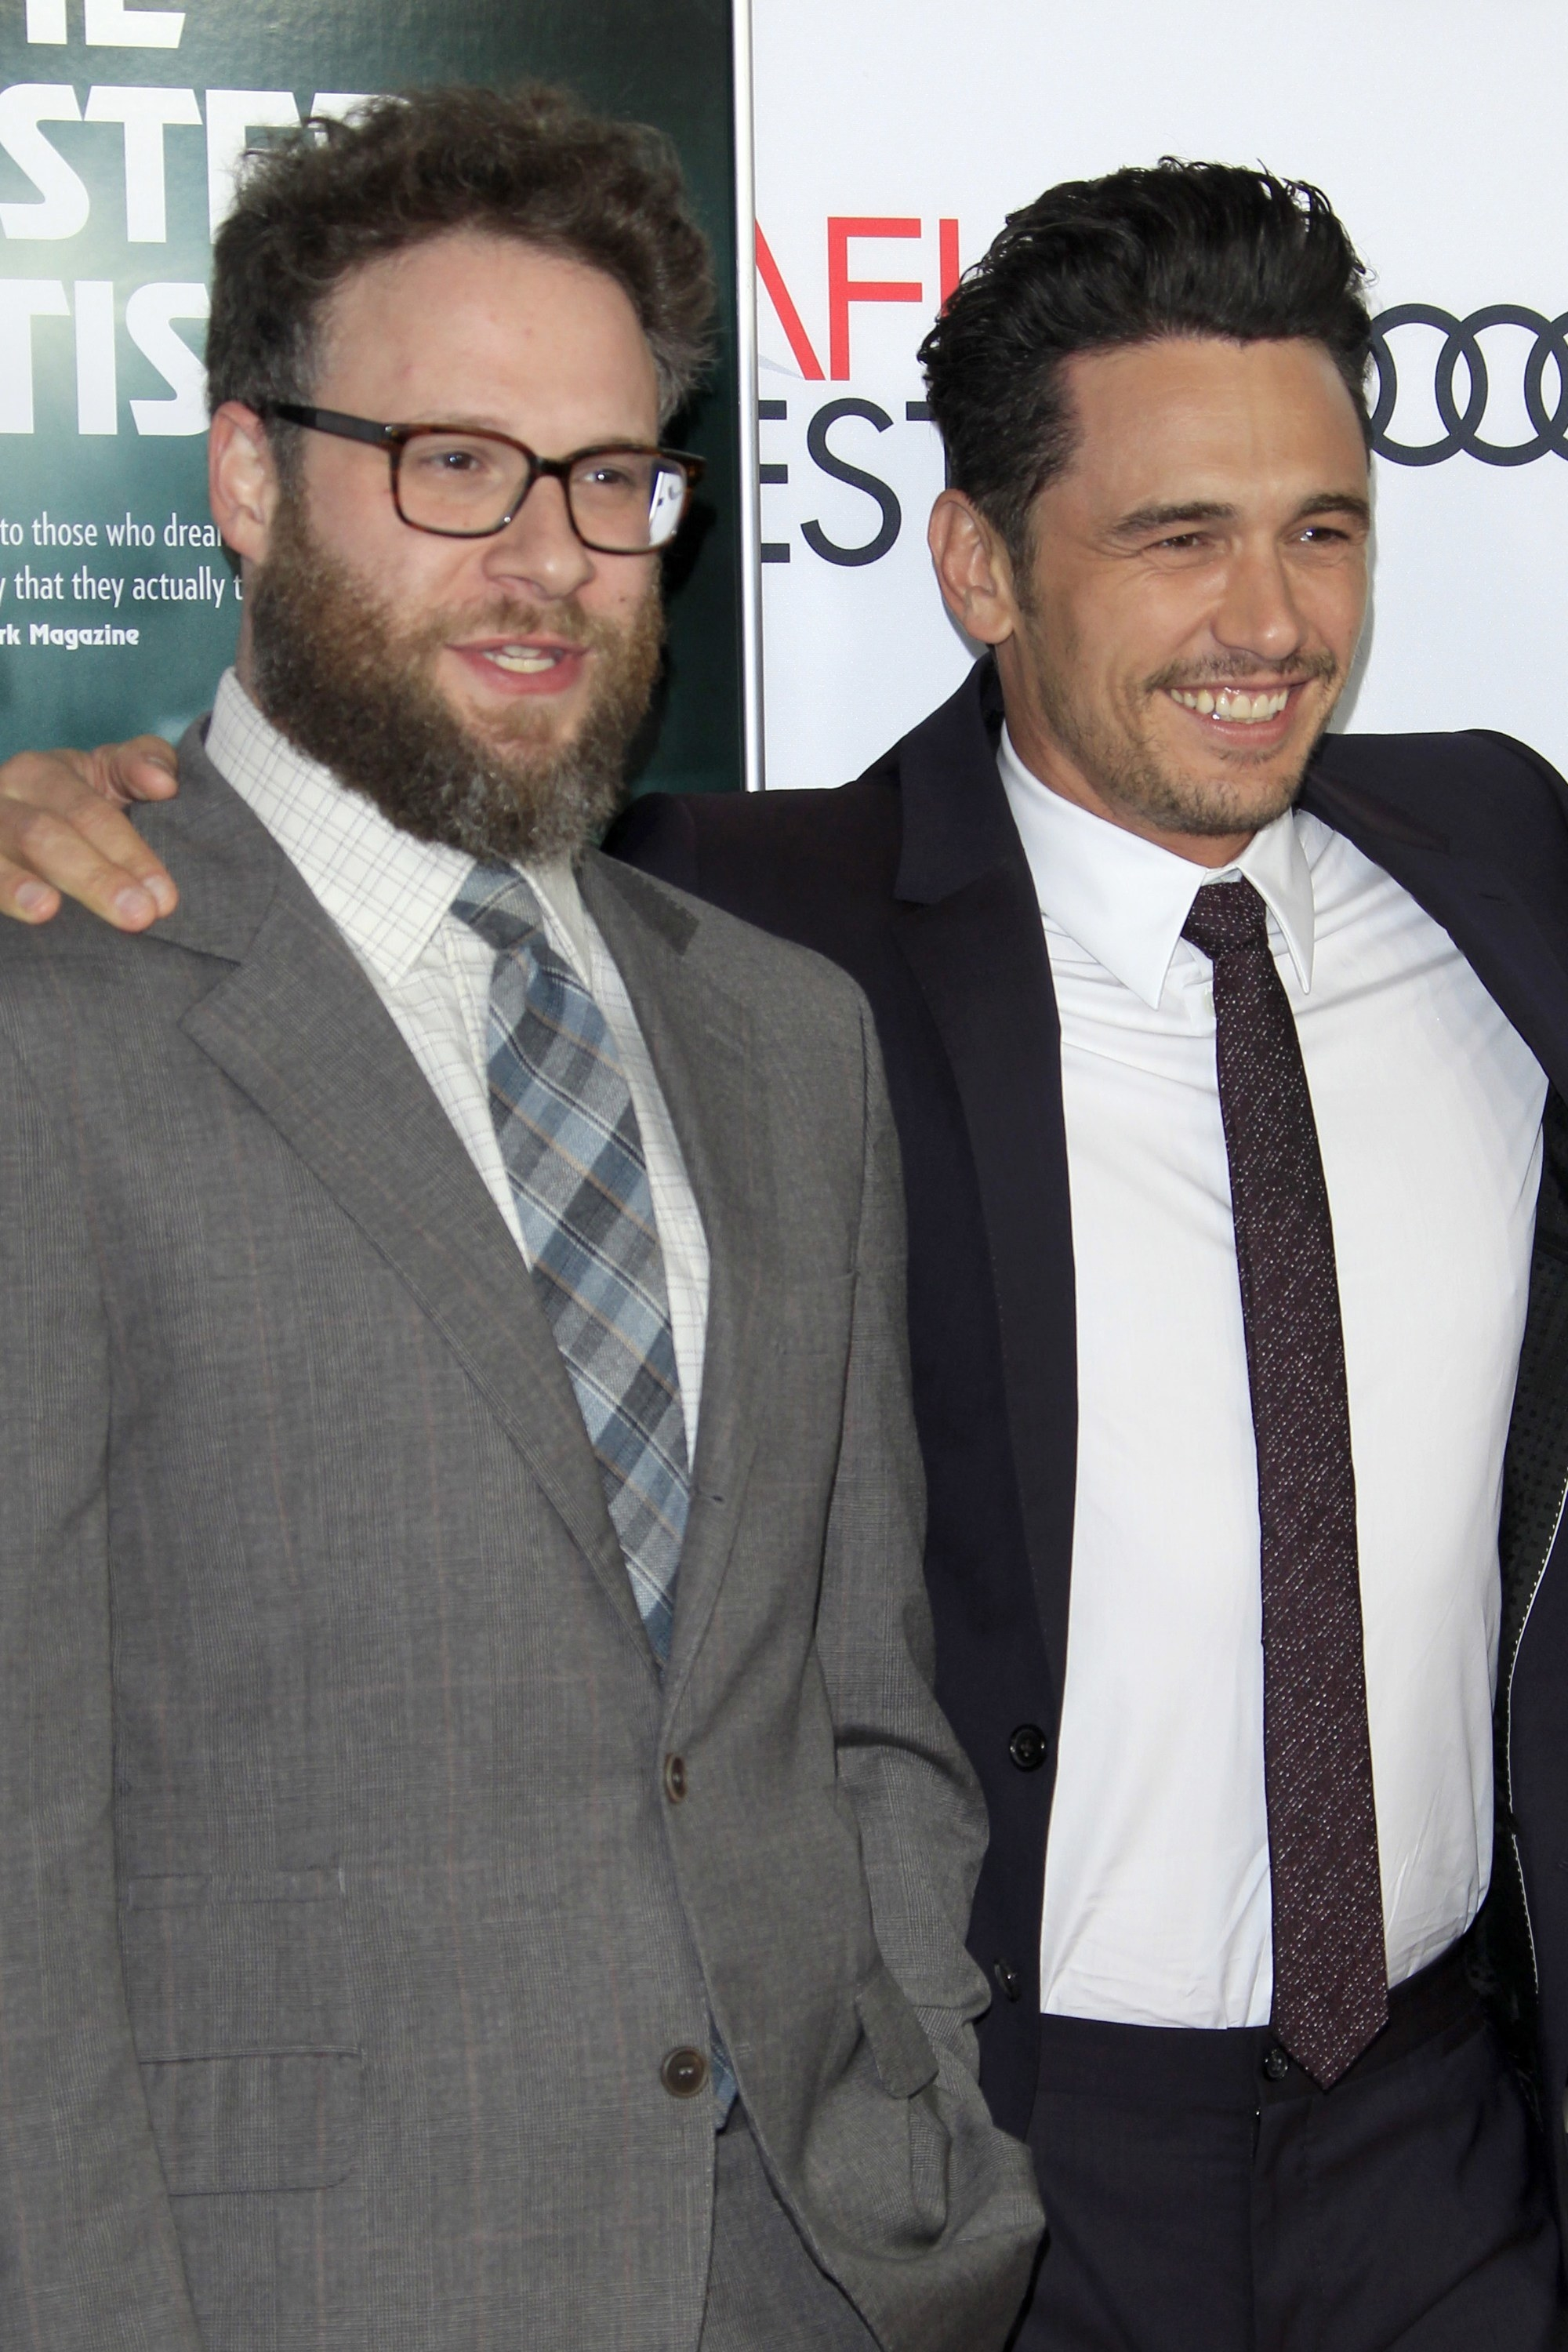 Rogen and Franco in suits for The Disaster Artist red carpet premiere